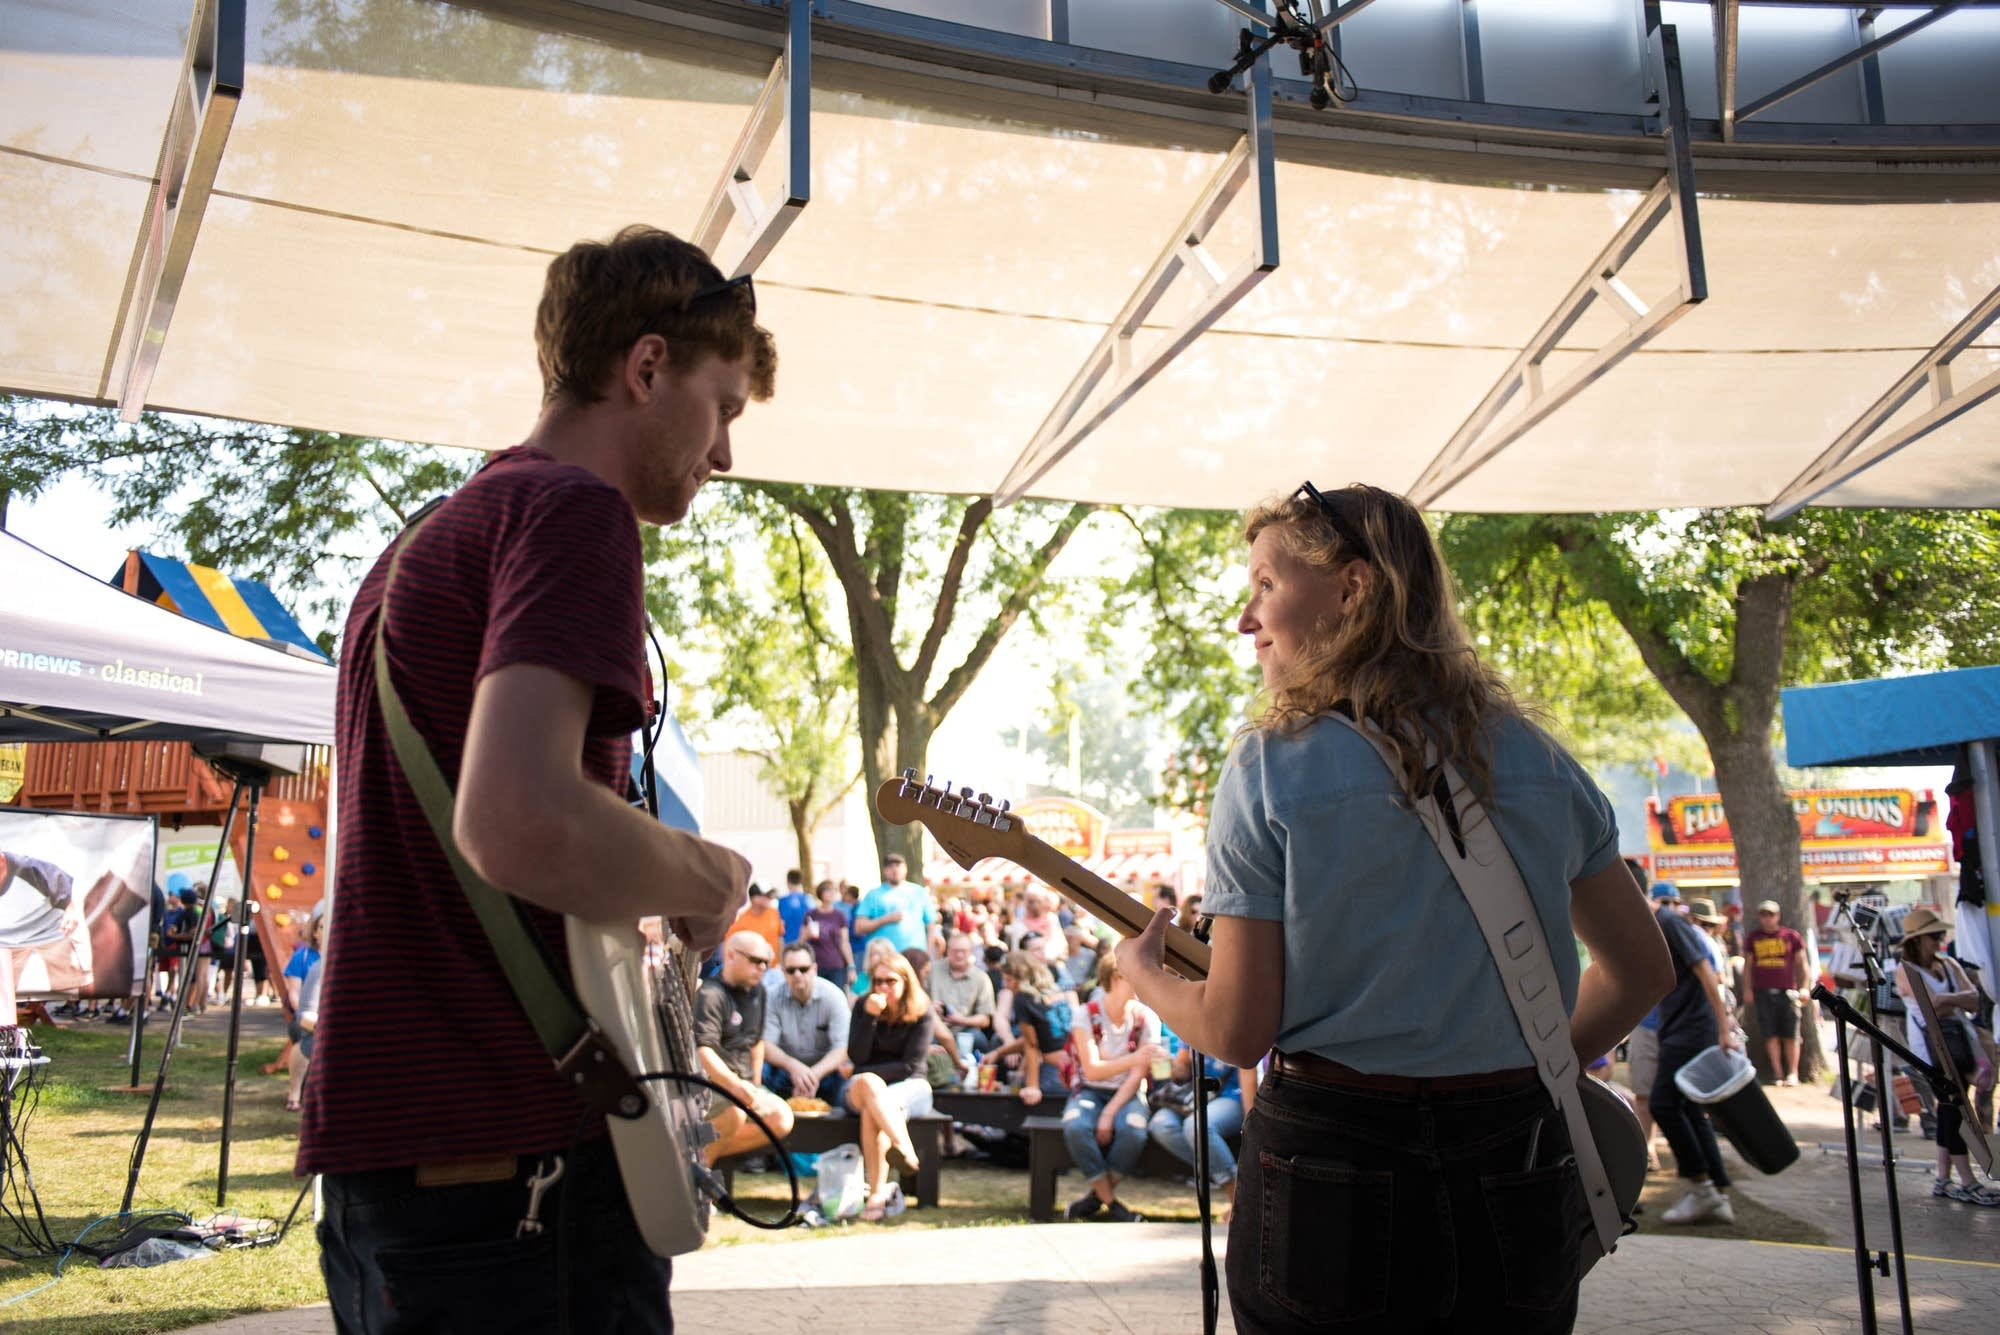 Bad Bad Hats perform at the MPR booth at the Minnesota State Fair